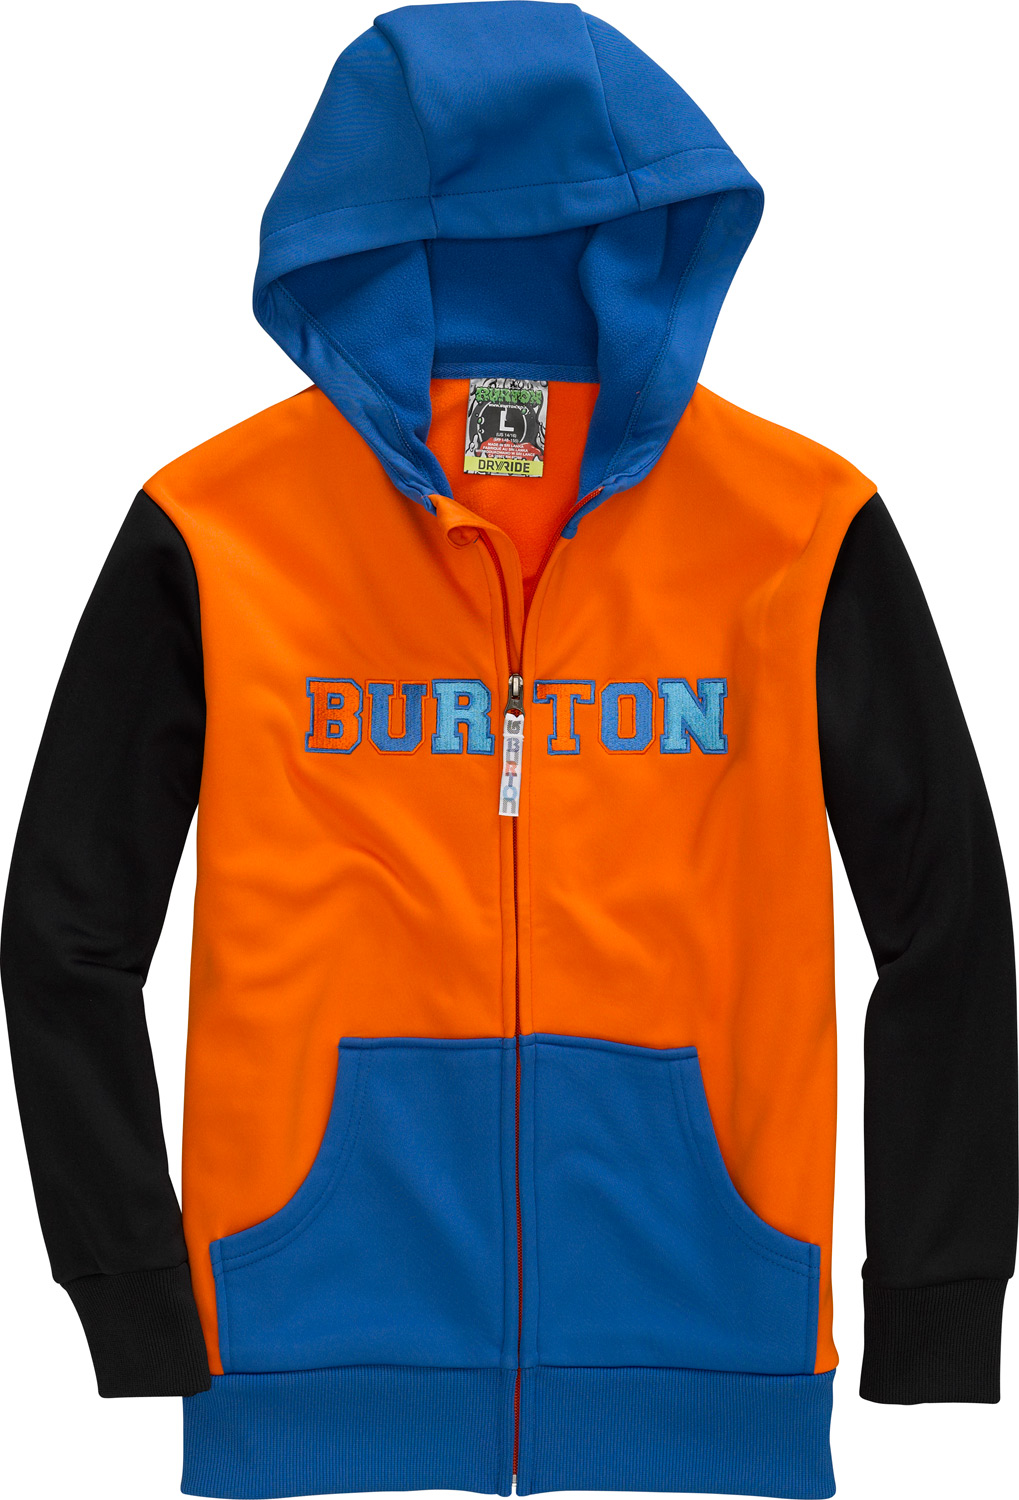 Snowboard Layer it up under a jacket midwinter or rock it solo the rest of the year,the last hoodie you'll ever need.Key Features of the Burton Doom Bonded Hoodie: DRYRIDE Thermex Bonded Fleece Sweatshirt Style Fulltime Hood Kangaroo Handwarmer Pockets Ribbed Cuffs and Hem - $47.95